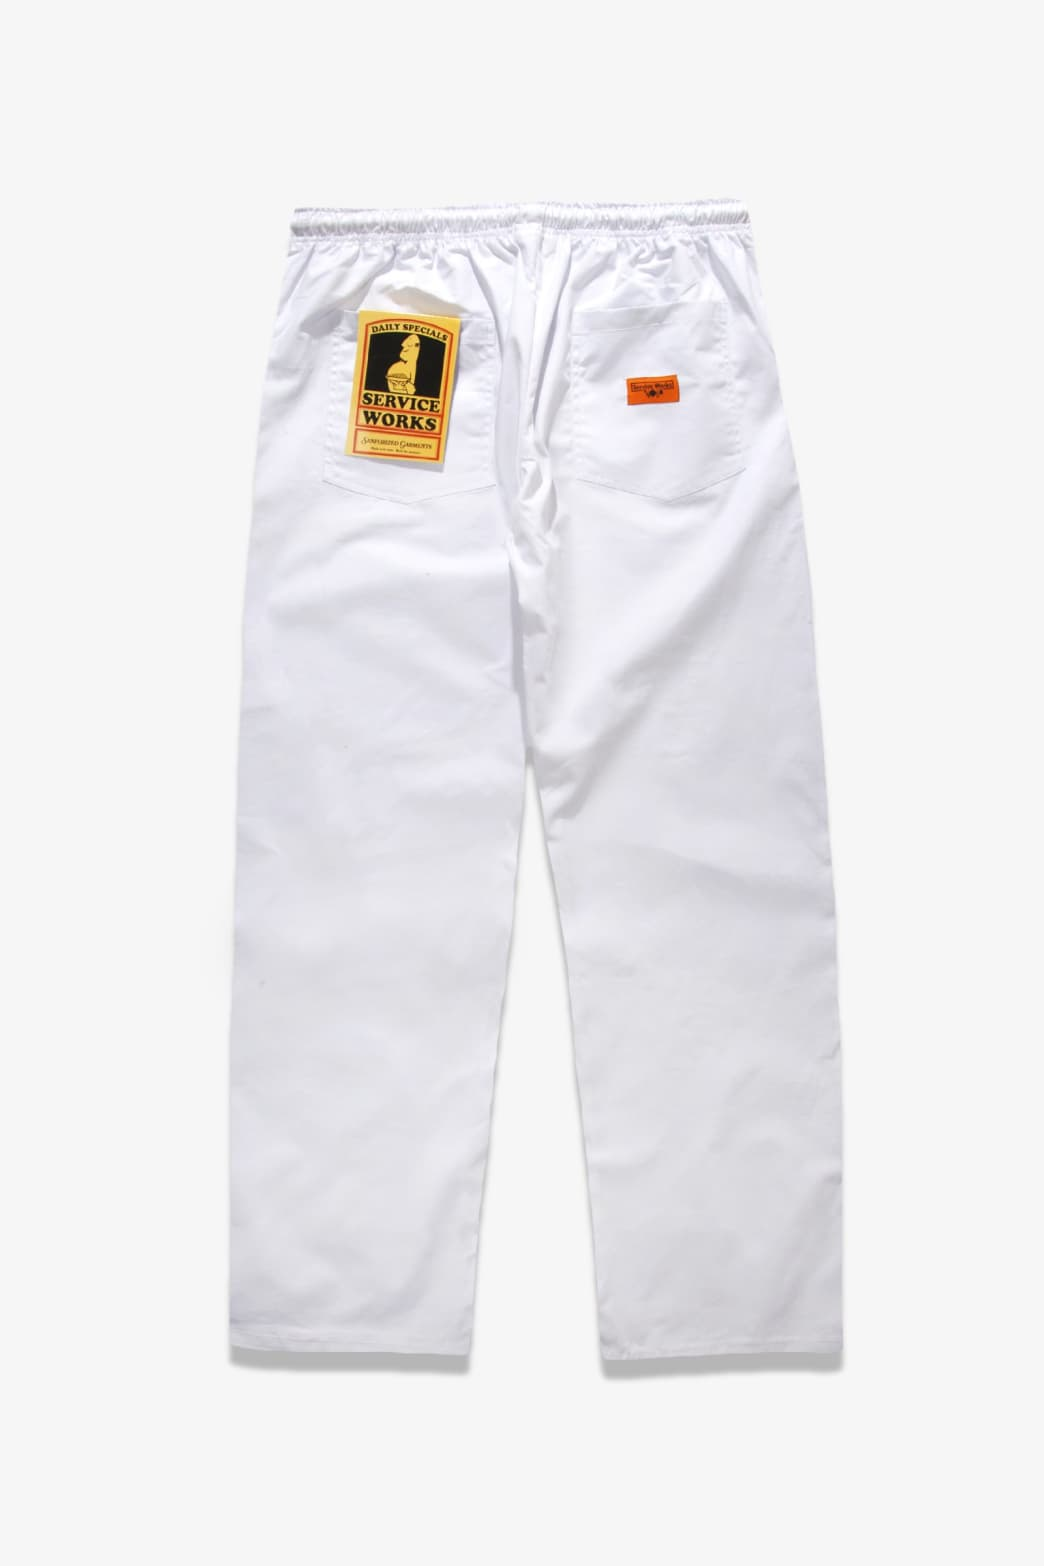 Service Works - Trade Chef Pants - White | Trousers by Service Works 1